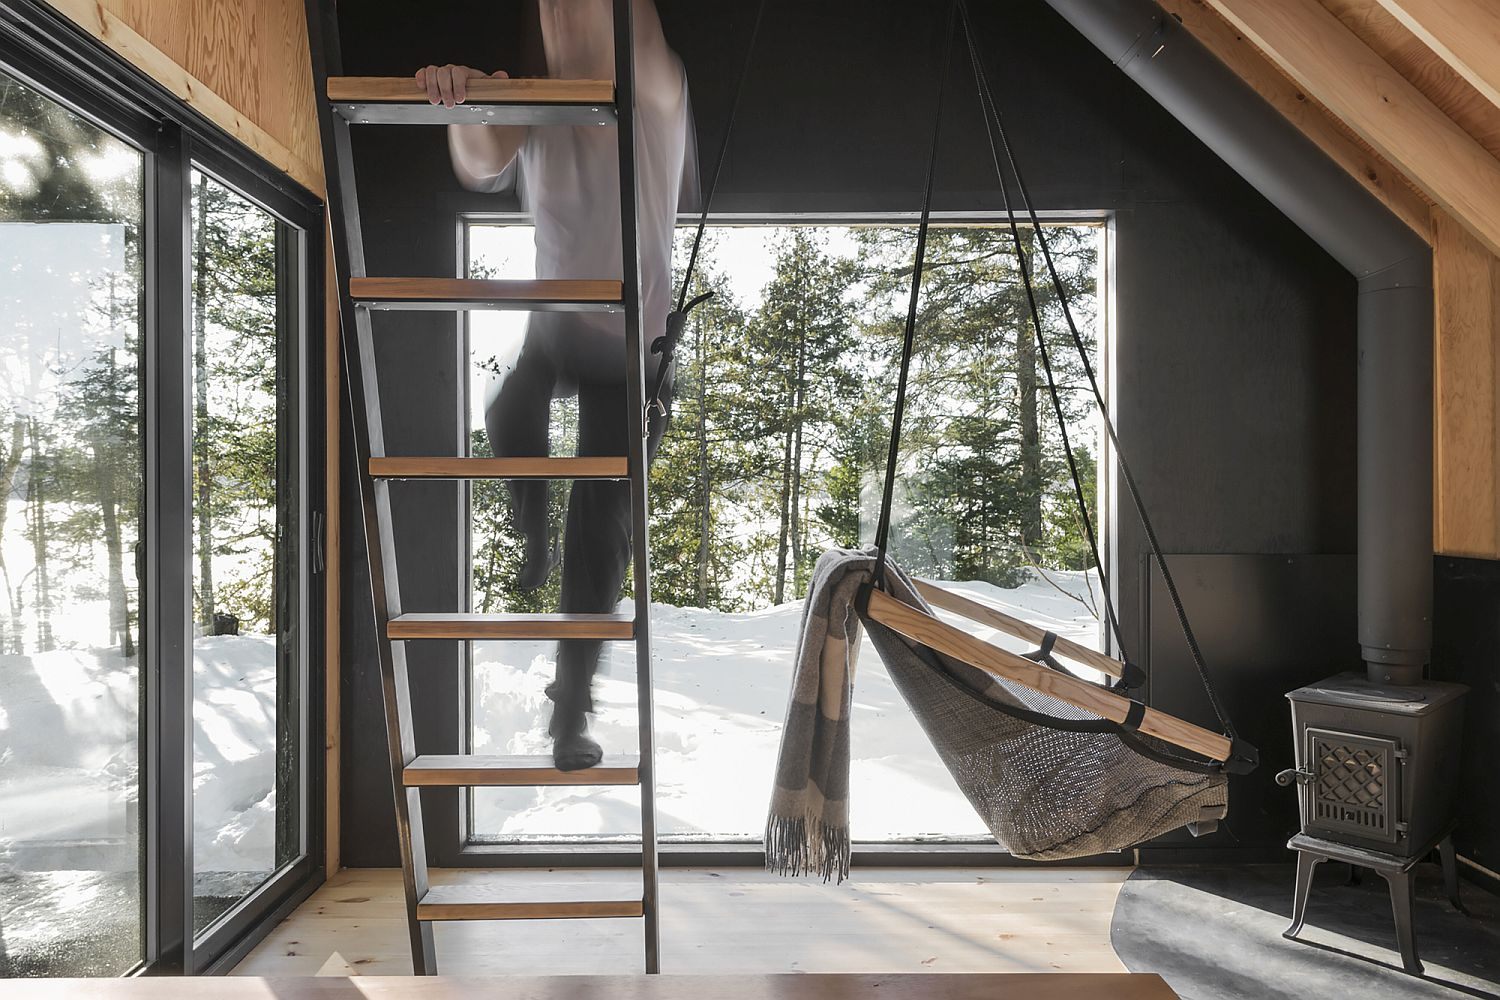 Simple ladder leading to the bedspace above